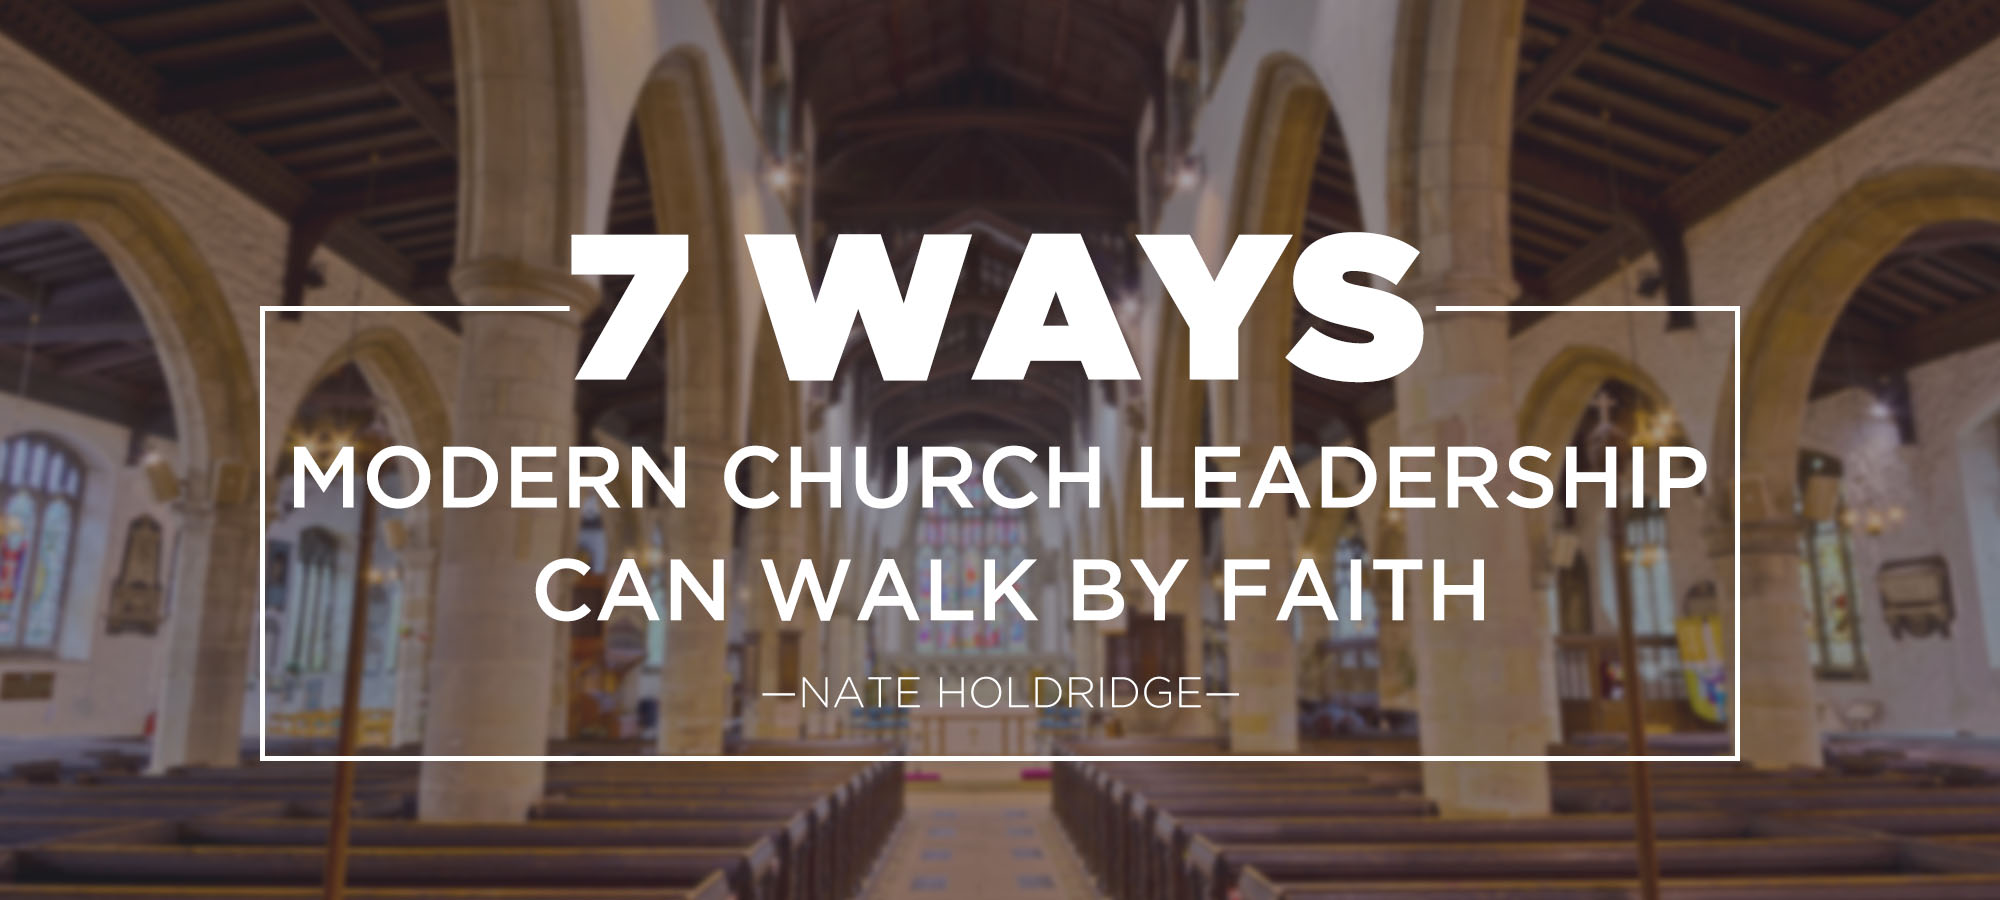 Seven Ways Modern Church Leadership Can Walk by Faith